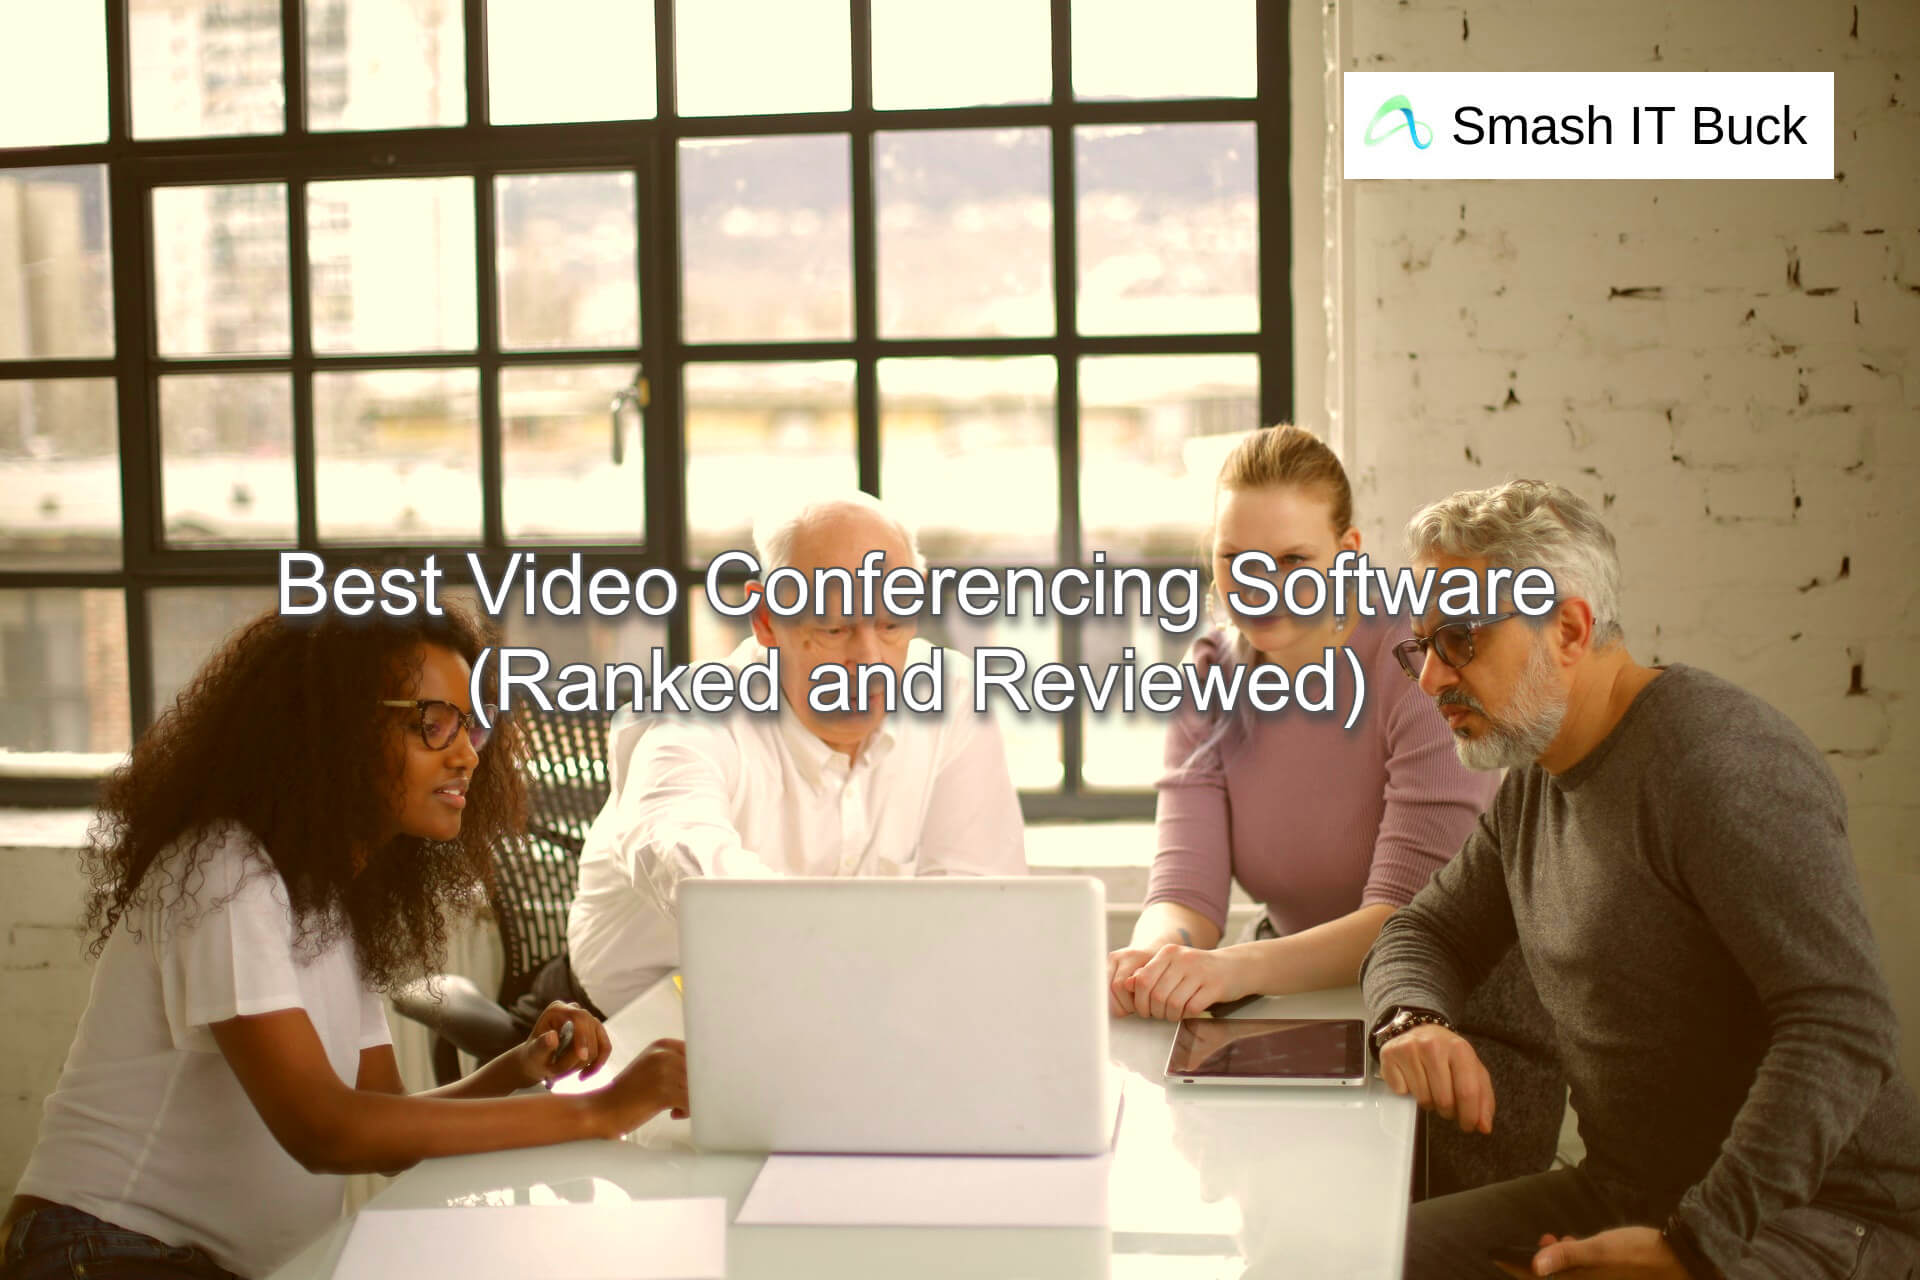 Best Video Conferencing Software to use in 2021